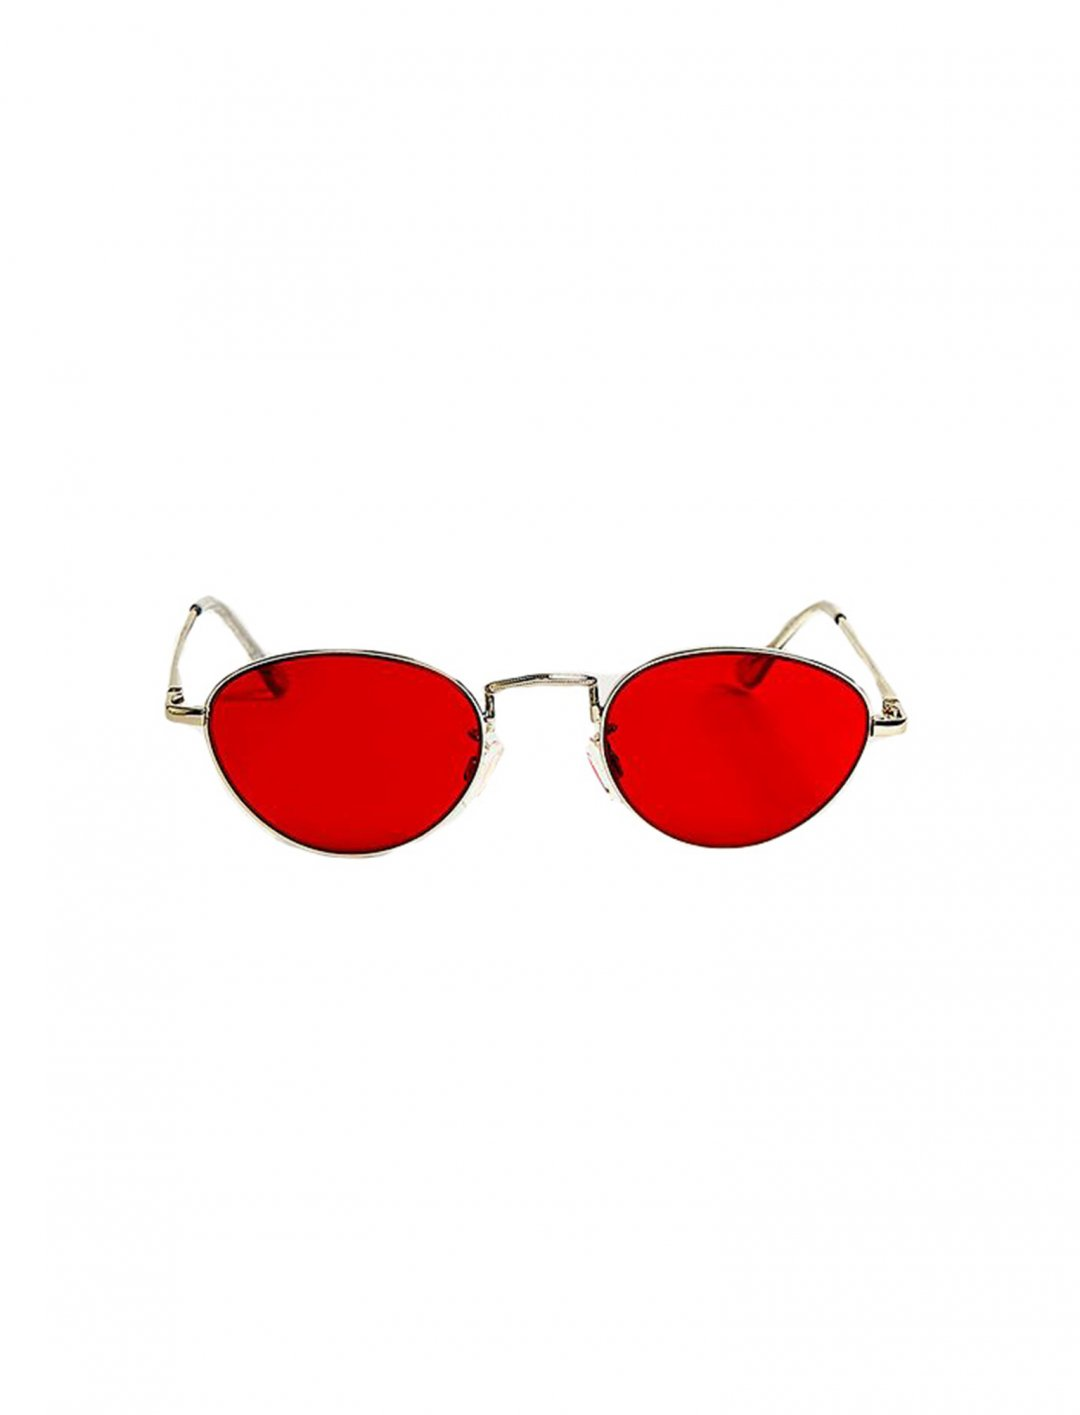 "Urban Outfitters Sunglasses {""id"":16,""product_section_id"":1,""name"":""Accessories"",""order"":15} Urban Outfitters"